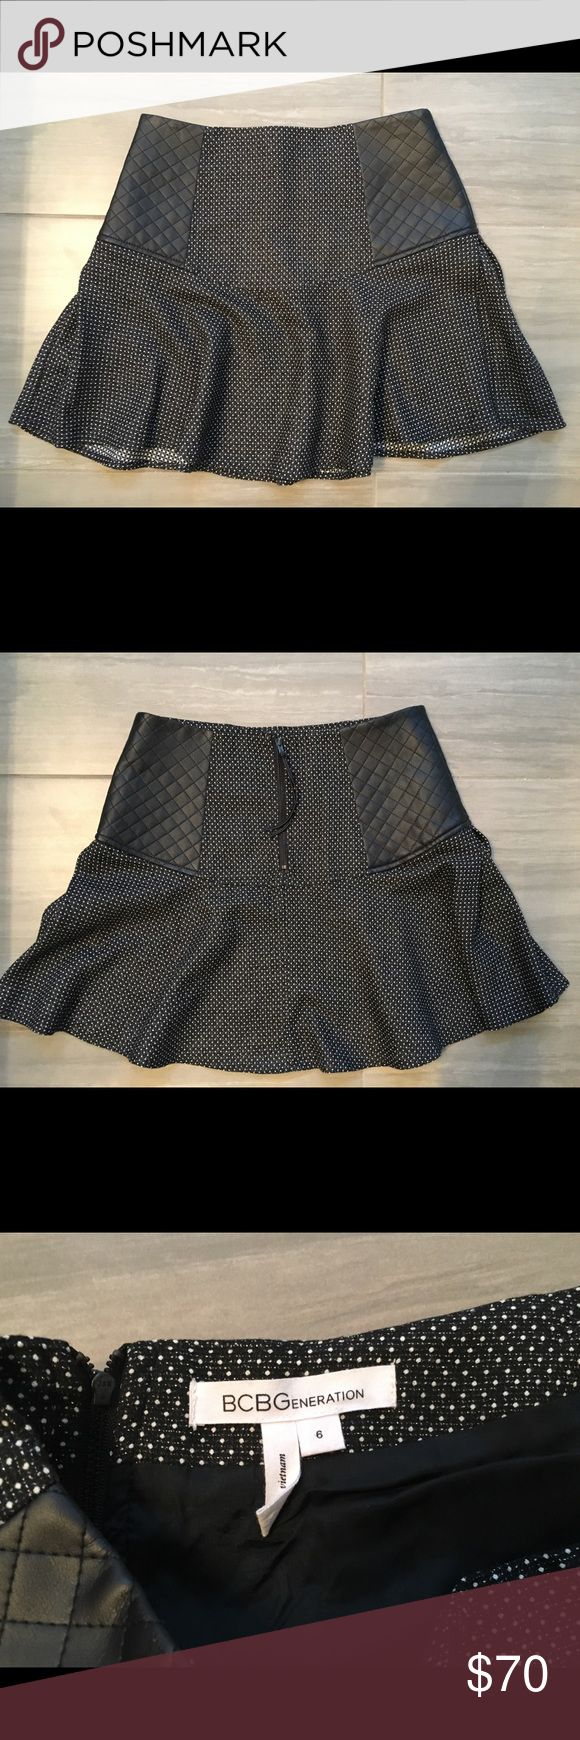 BCBG black leather quilt mini skirt - never worn!! Super cute fall winter skirt! Great with booties or knee high boots. Brand new never worn. BCBGeneration Skirts Mini